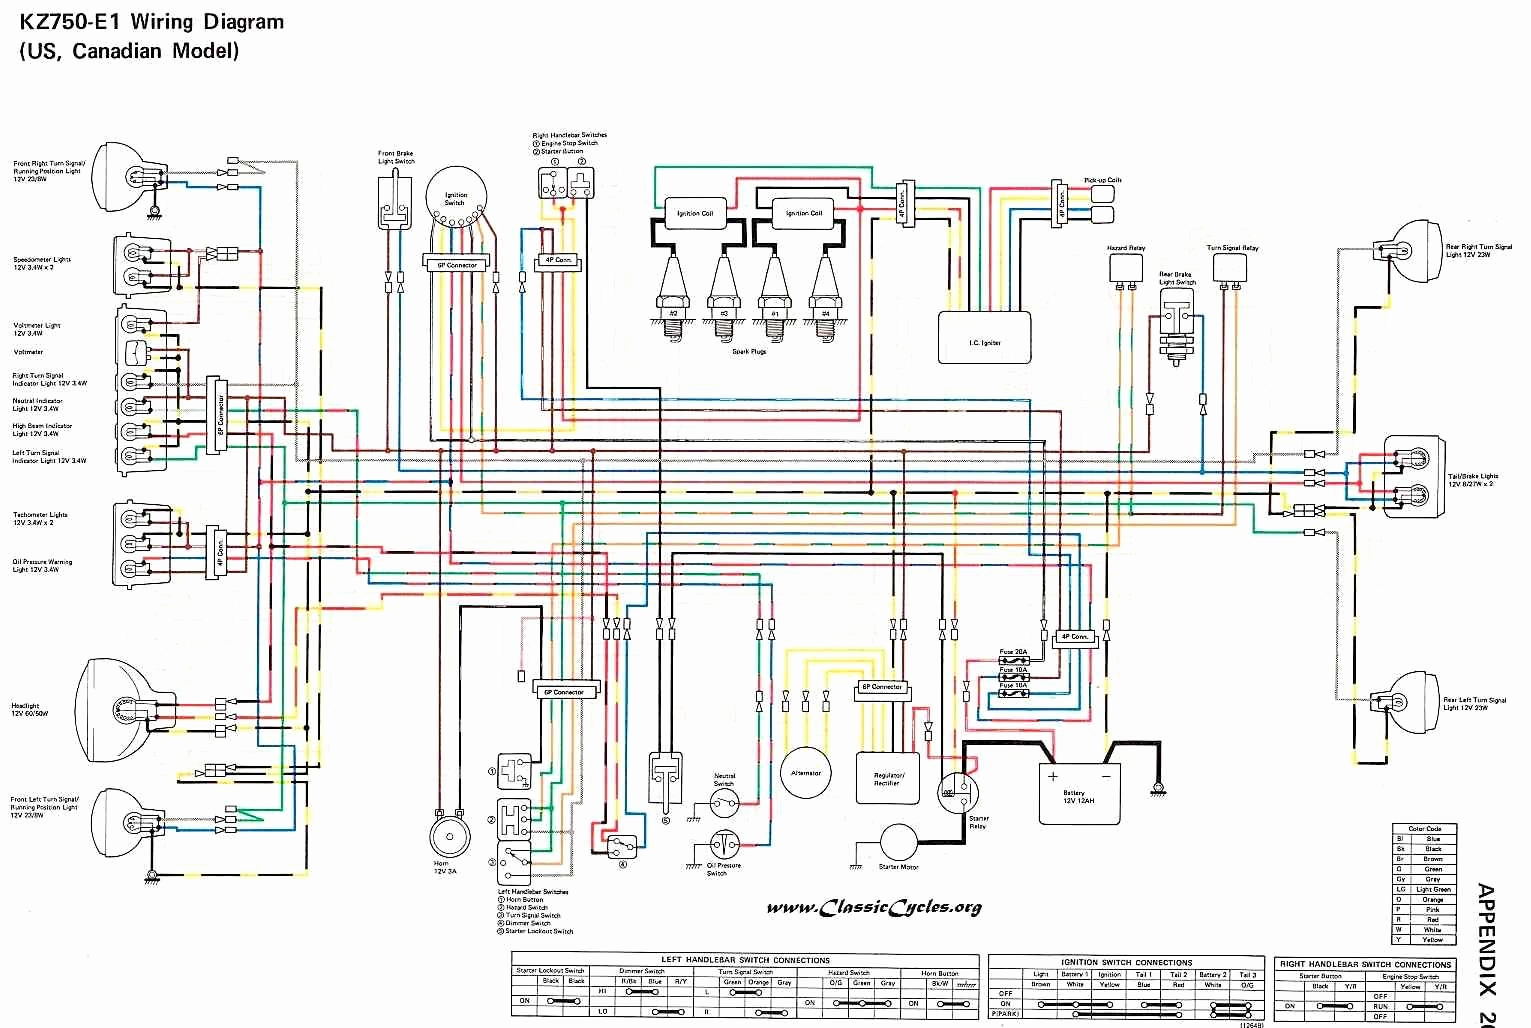 02 Harley Wide Glide Wiring Diagram. Harley Wide Glide Accessories on harley custom wiring diagrams, dyna shift minder wiring diagrams, 1999 softail wiring diagrams,